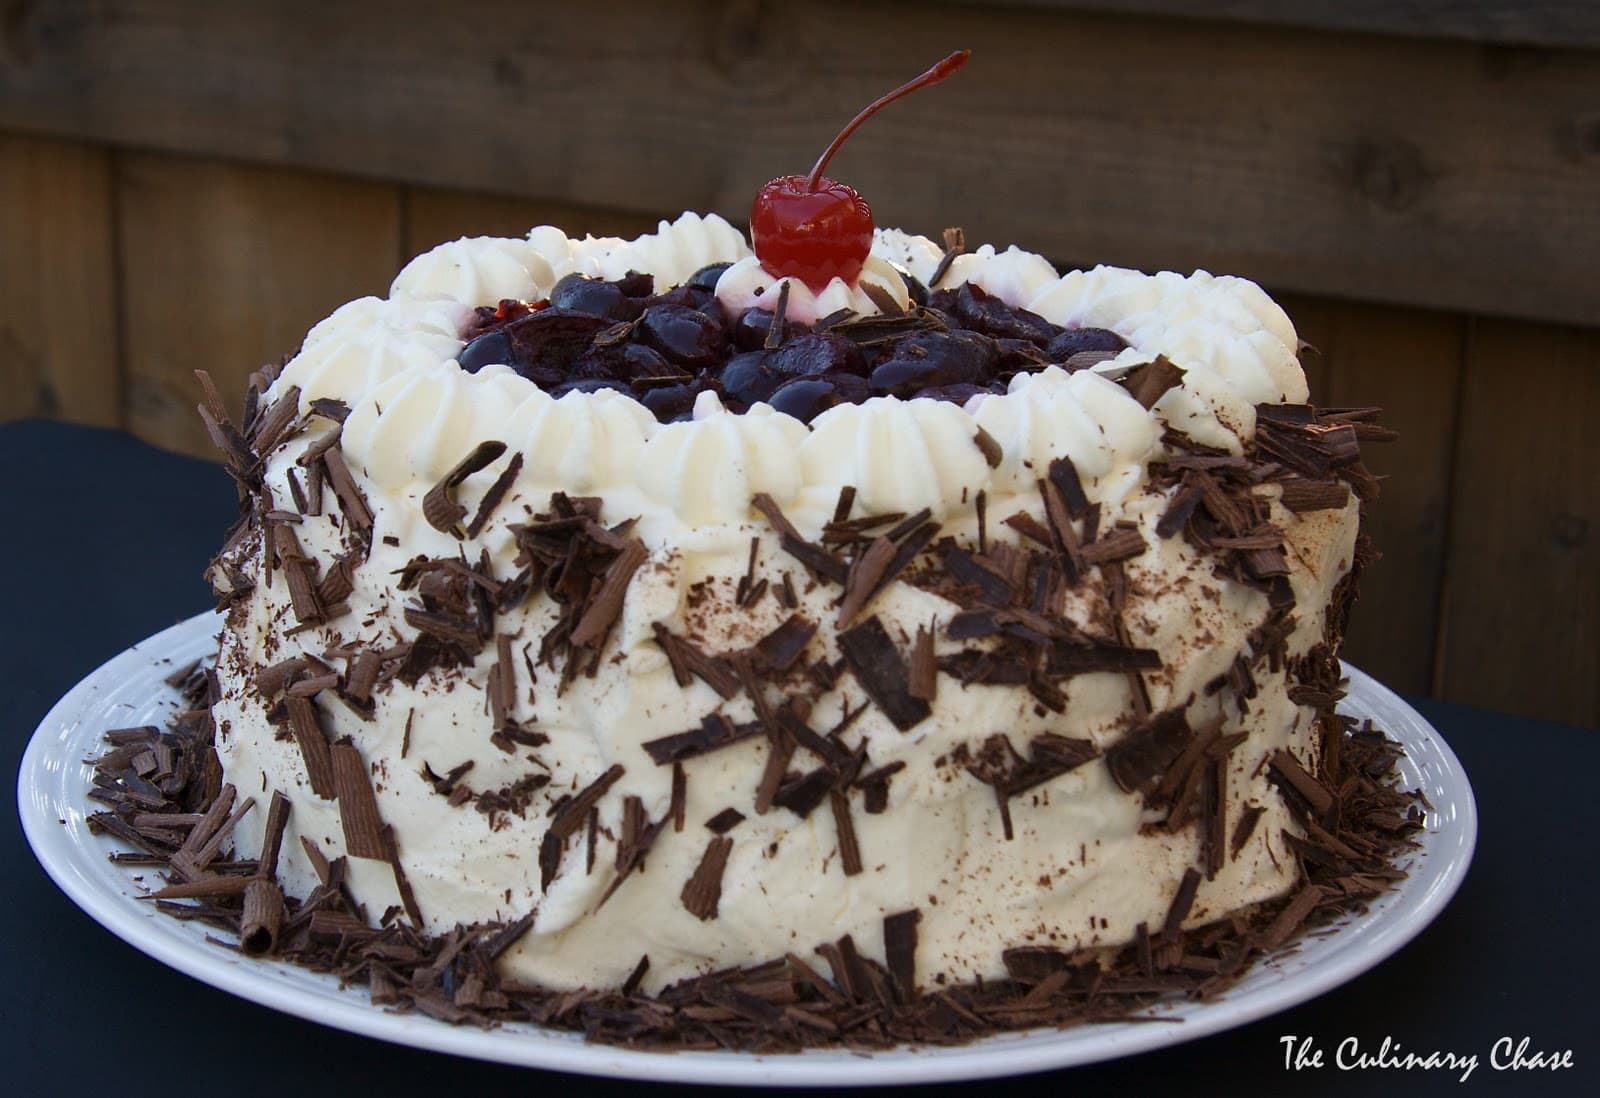 White Forest Cake Recipe In Pressure Cooker: The Culinary Chase